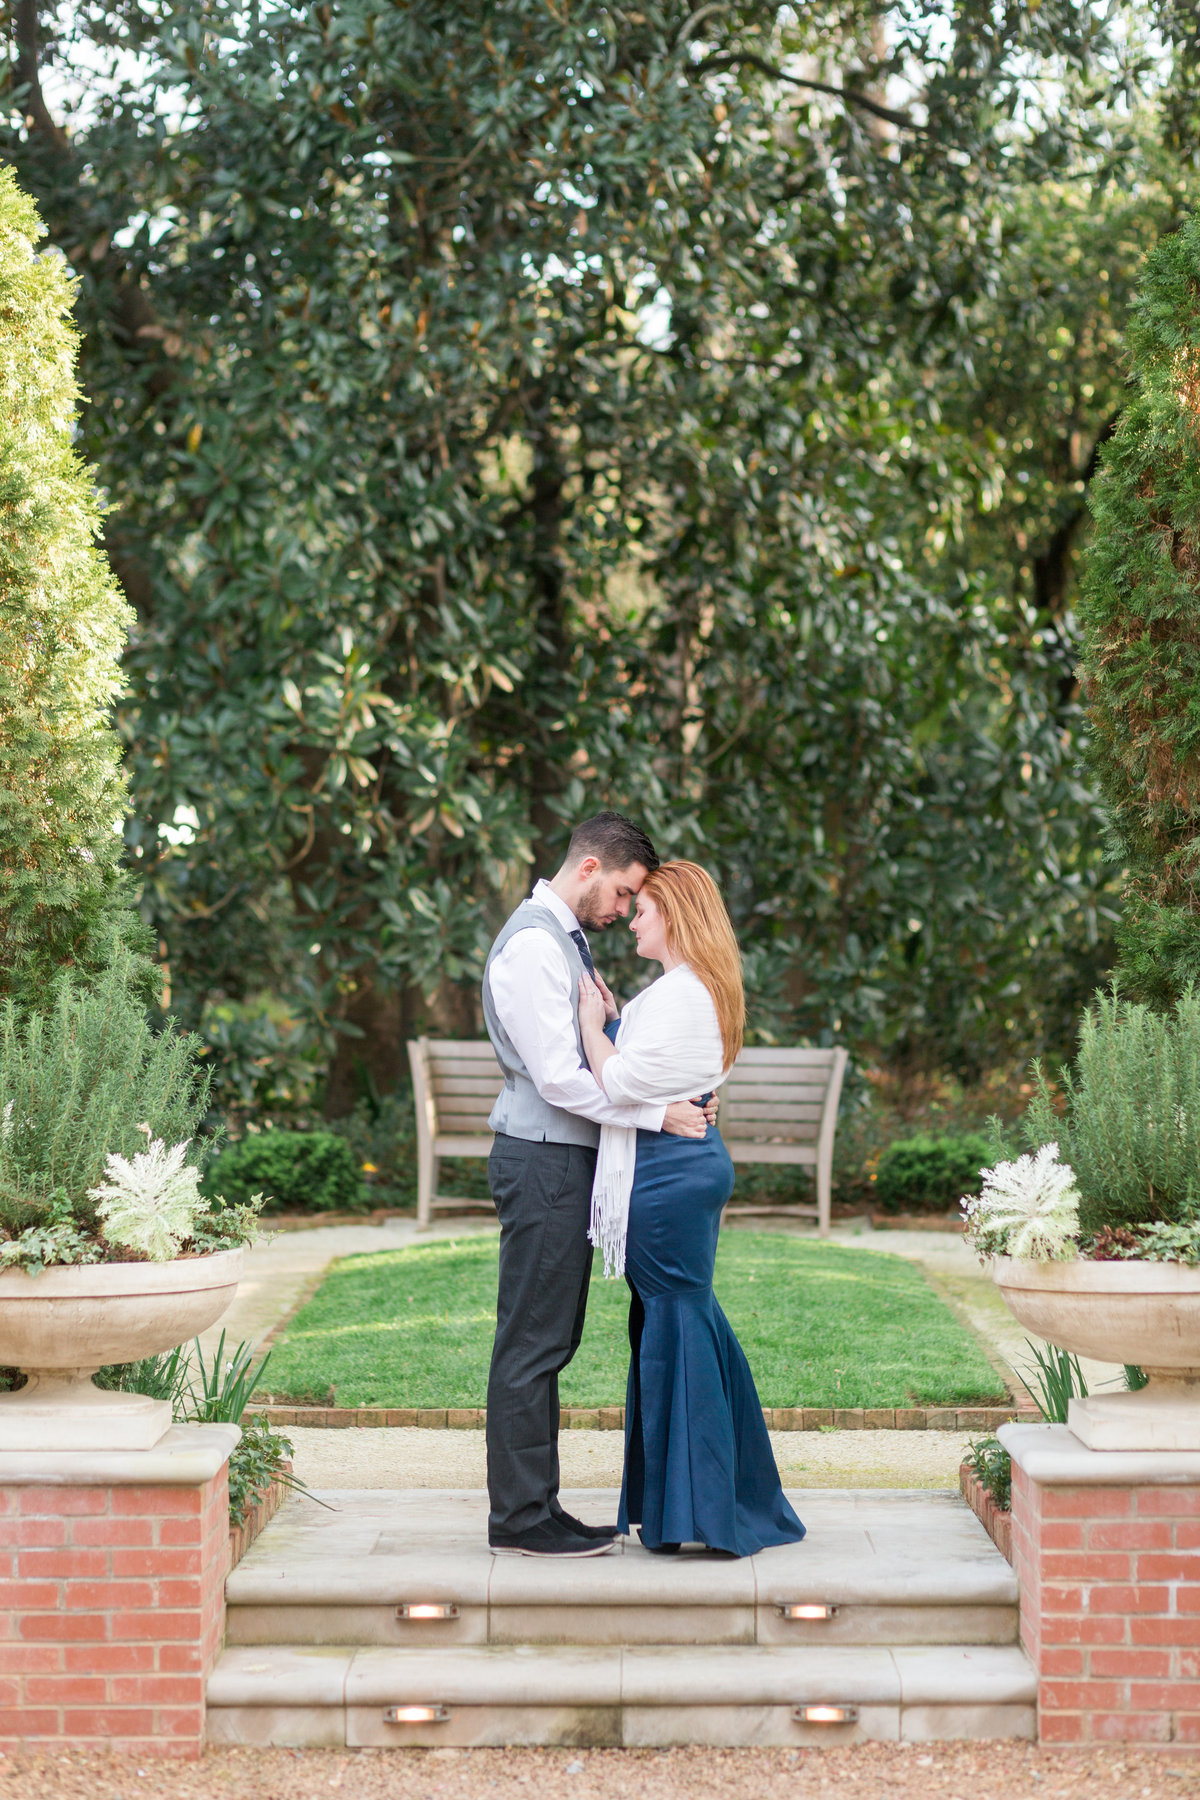 Meagan and Michael Engaged-Samantha Laffoon Photography-120